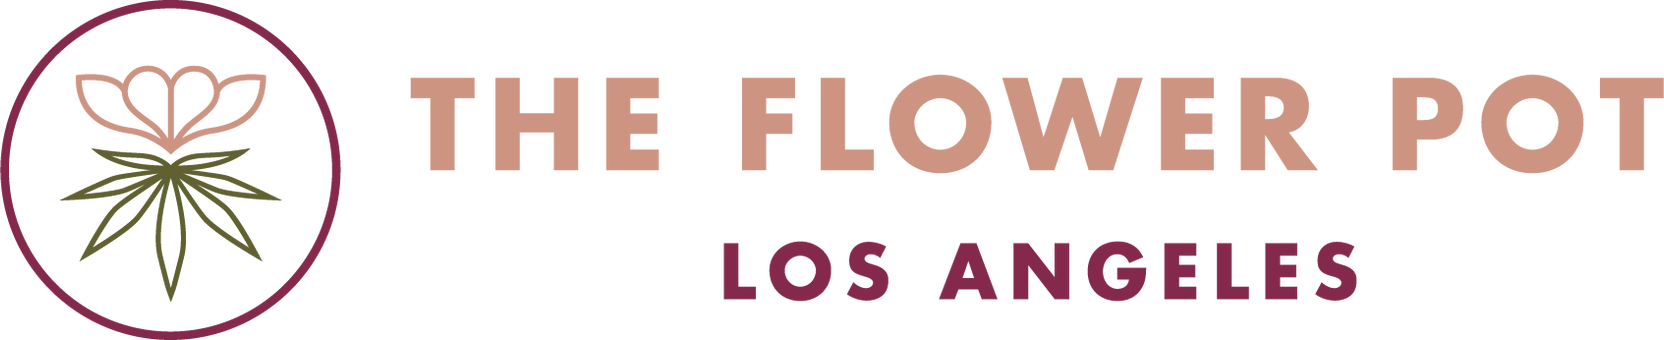 The Flower Pot LA